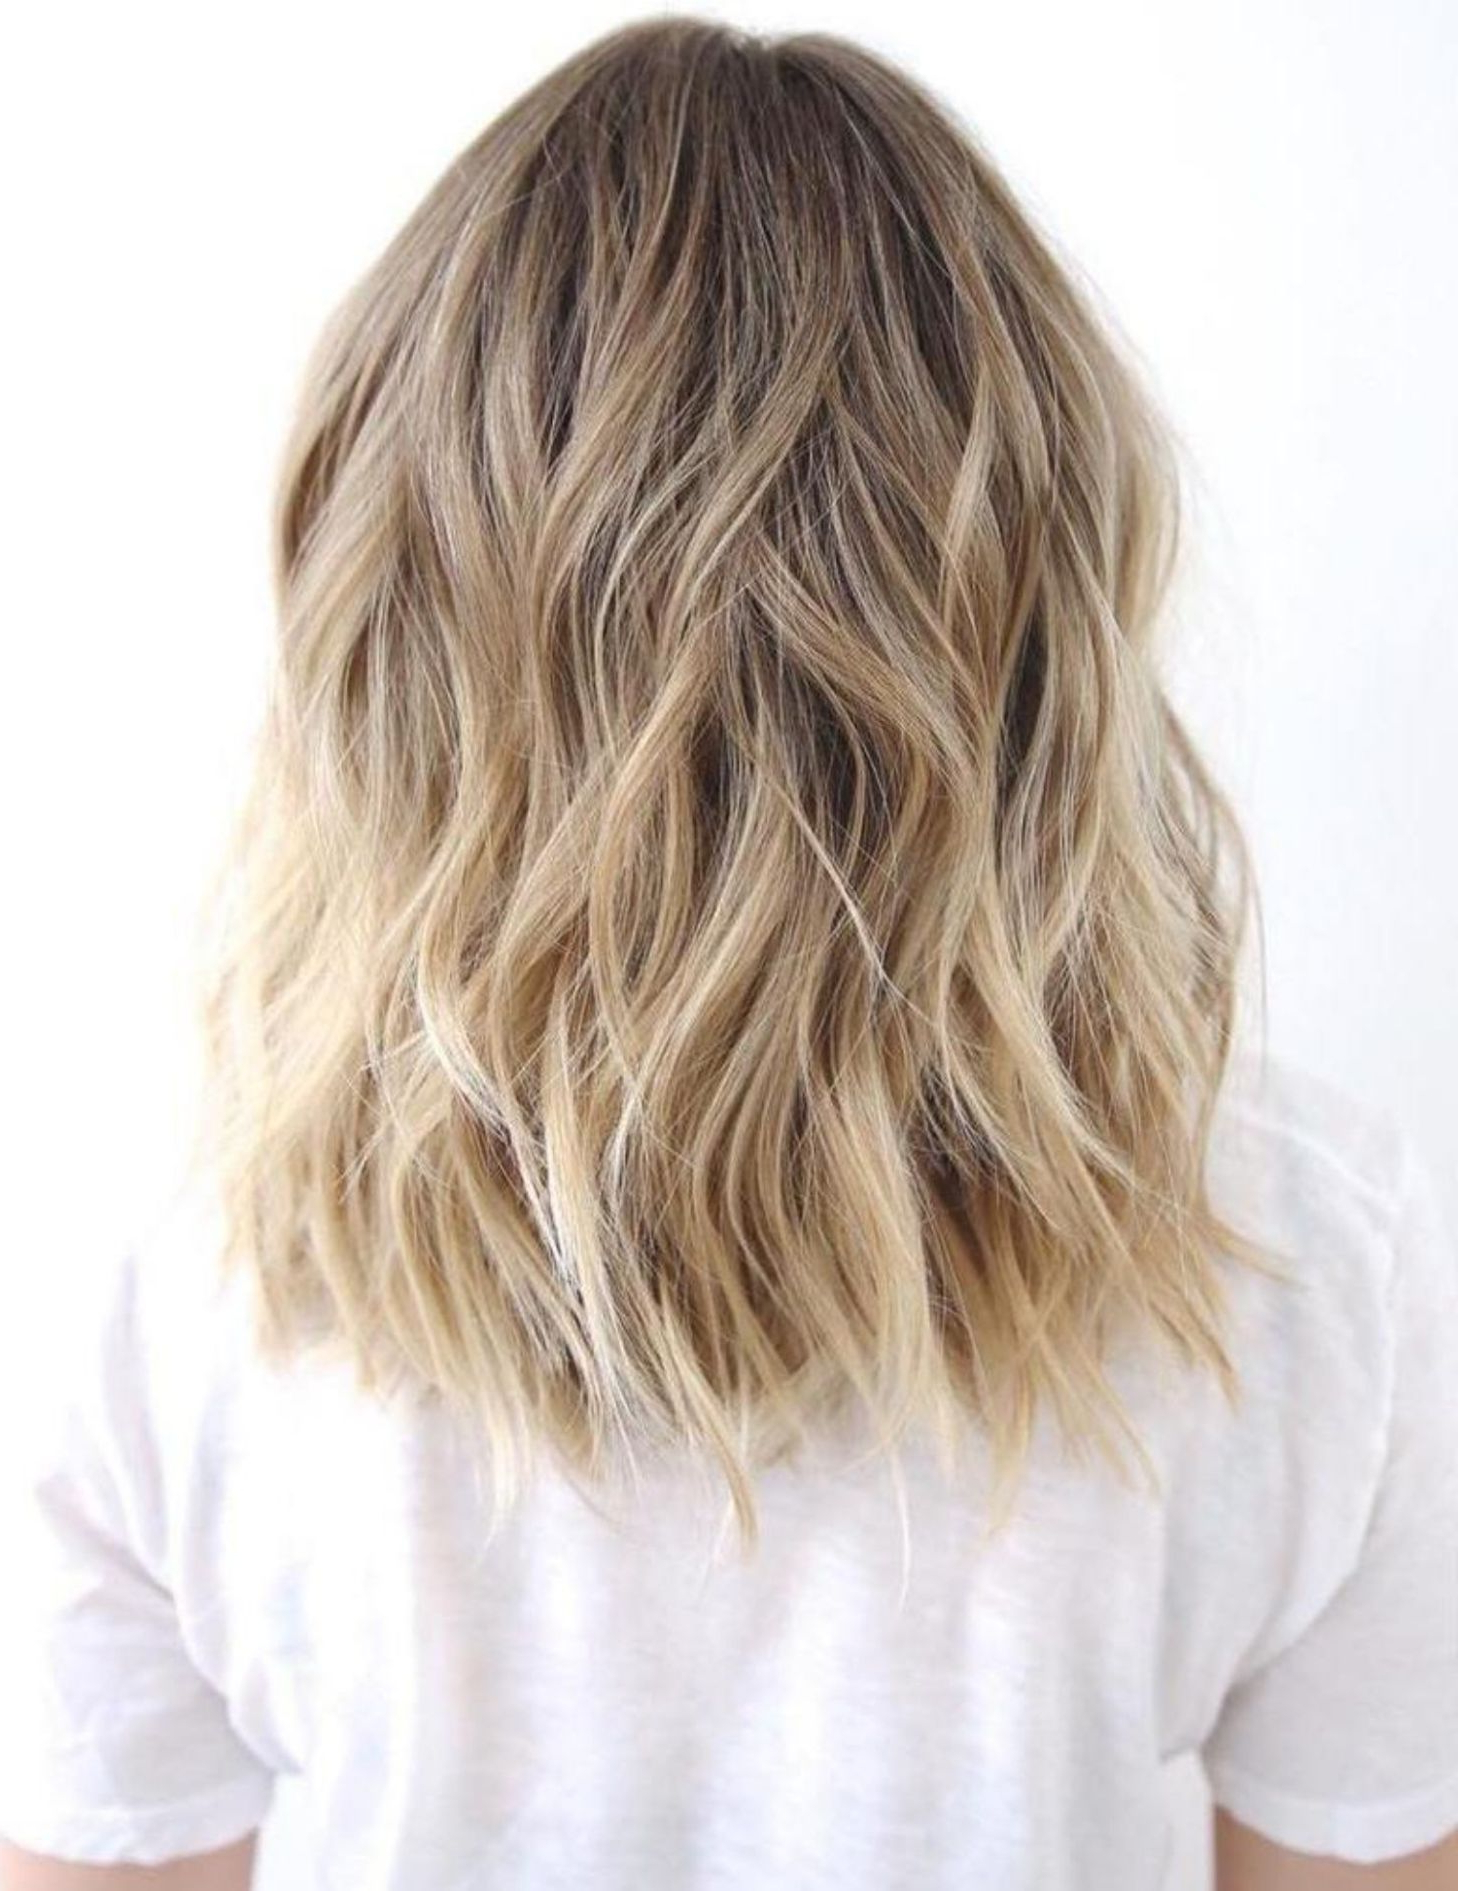 60 Best Variations Of A Medium Shag Haircut For Your With Regard To Newest Beach Blonde Medium Shag Haircuts (View 1 of 20)